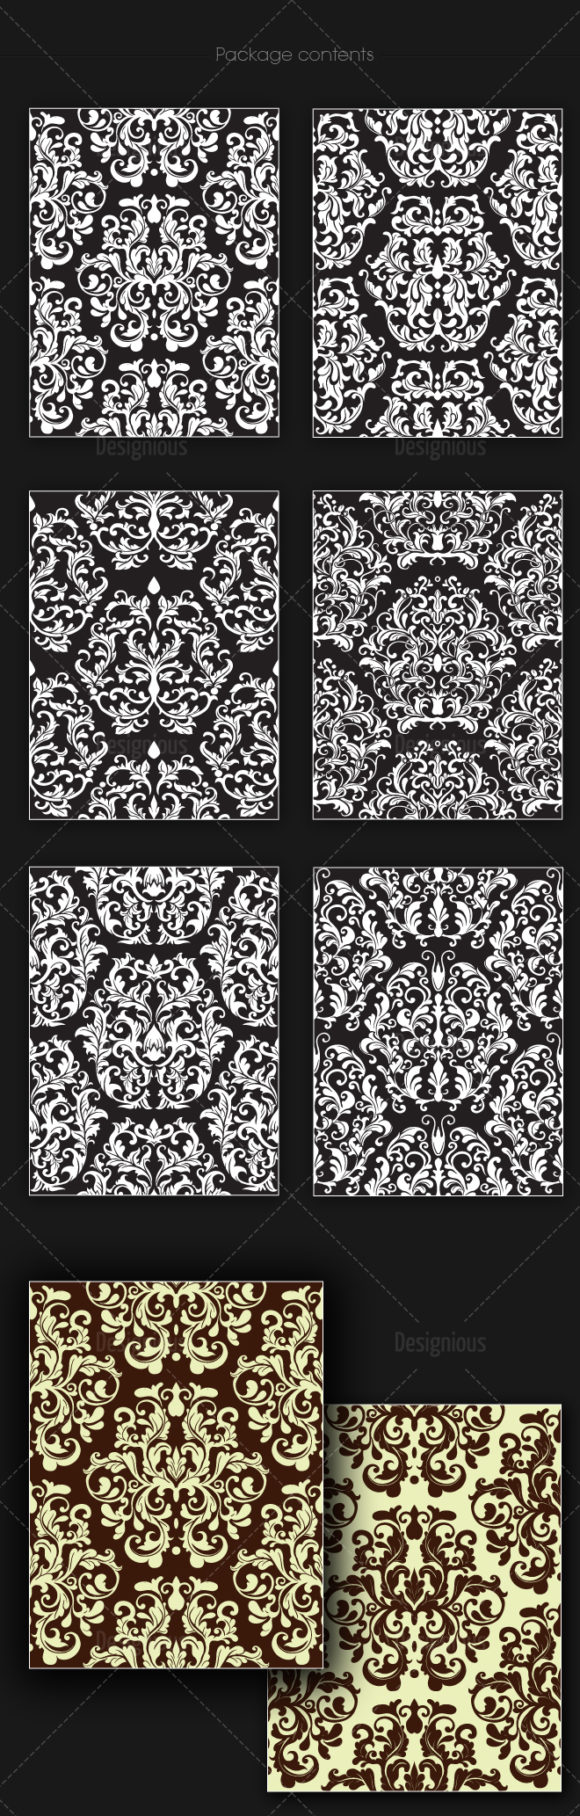 Seamless Patterns Vector Pack 143 products designious vector seamless 143 large